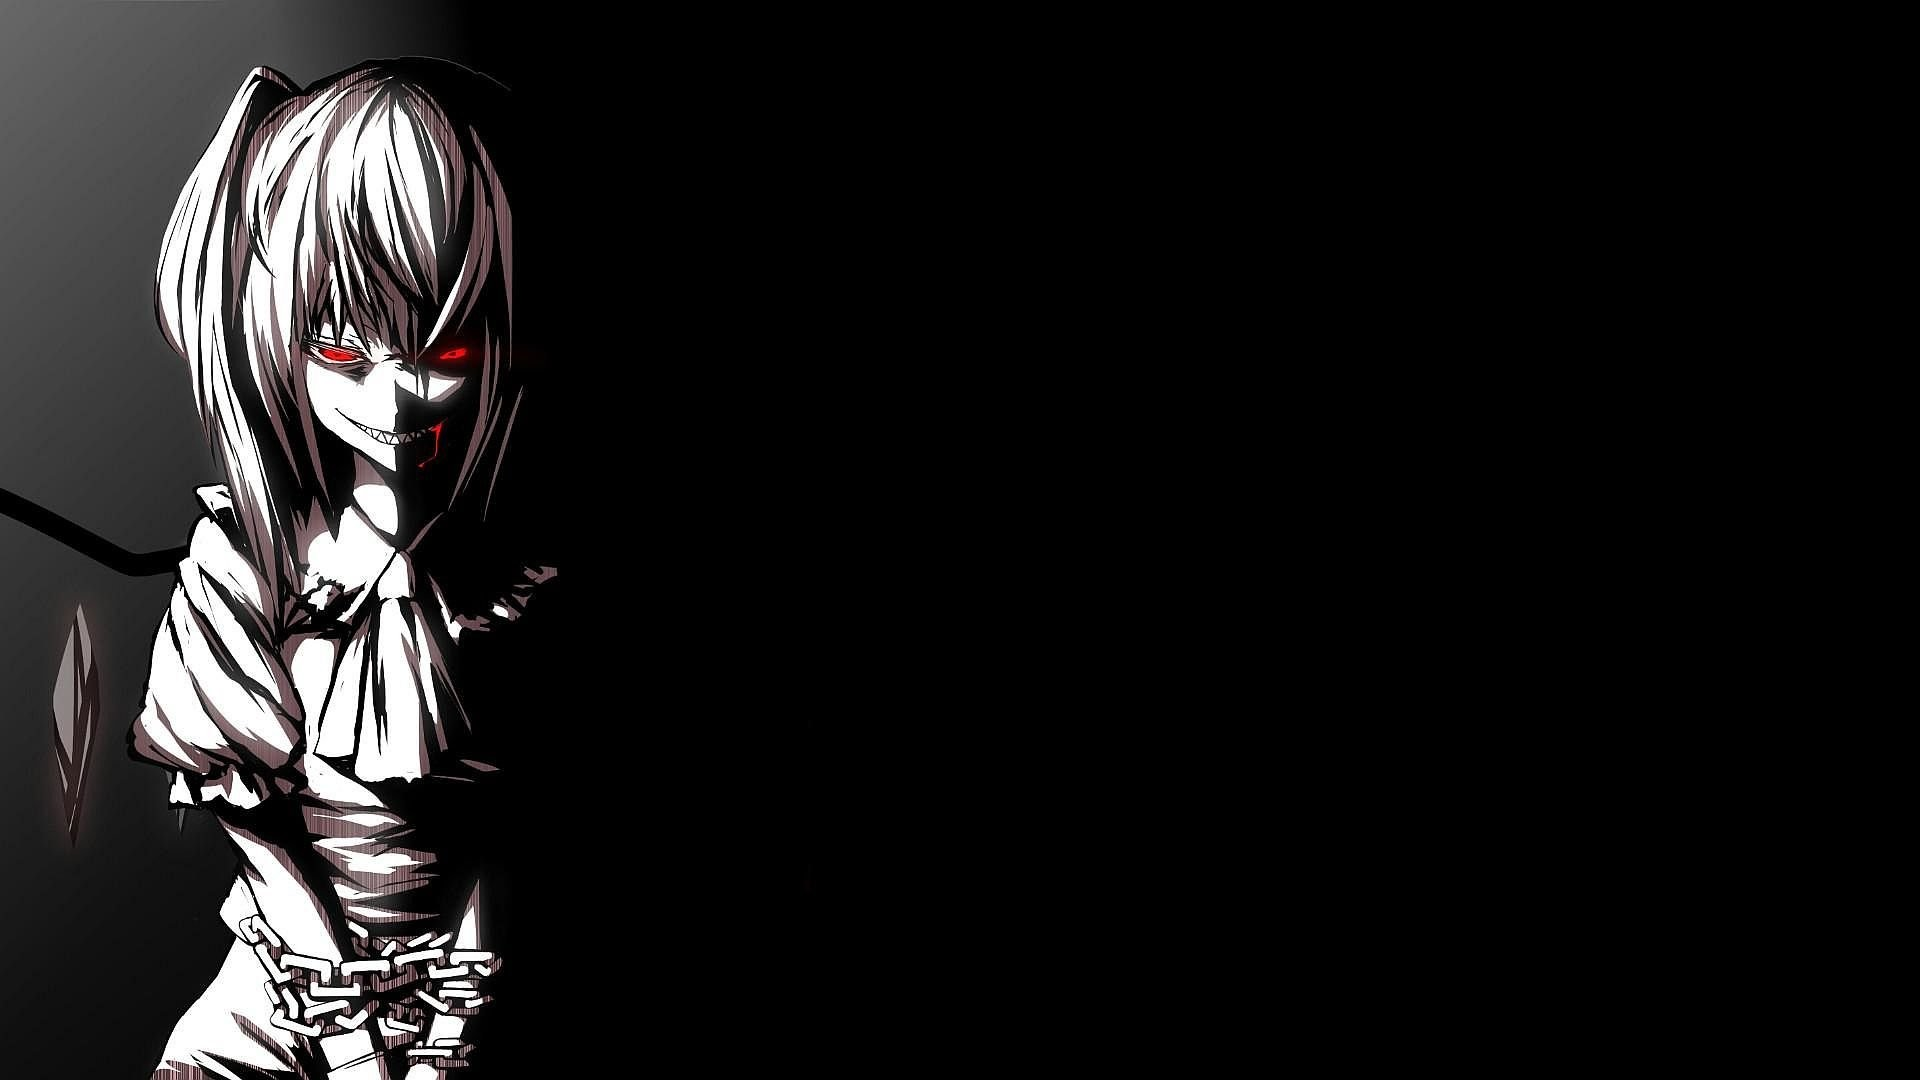 Creepy Anime Wallpaper 54 Images